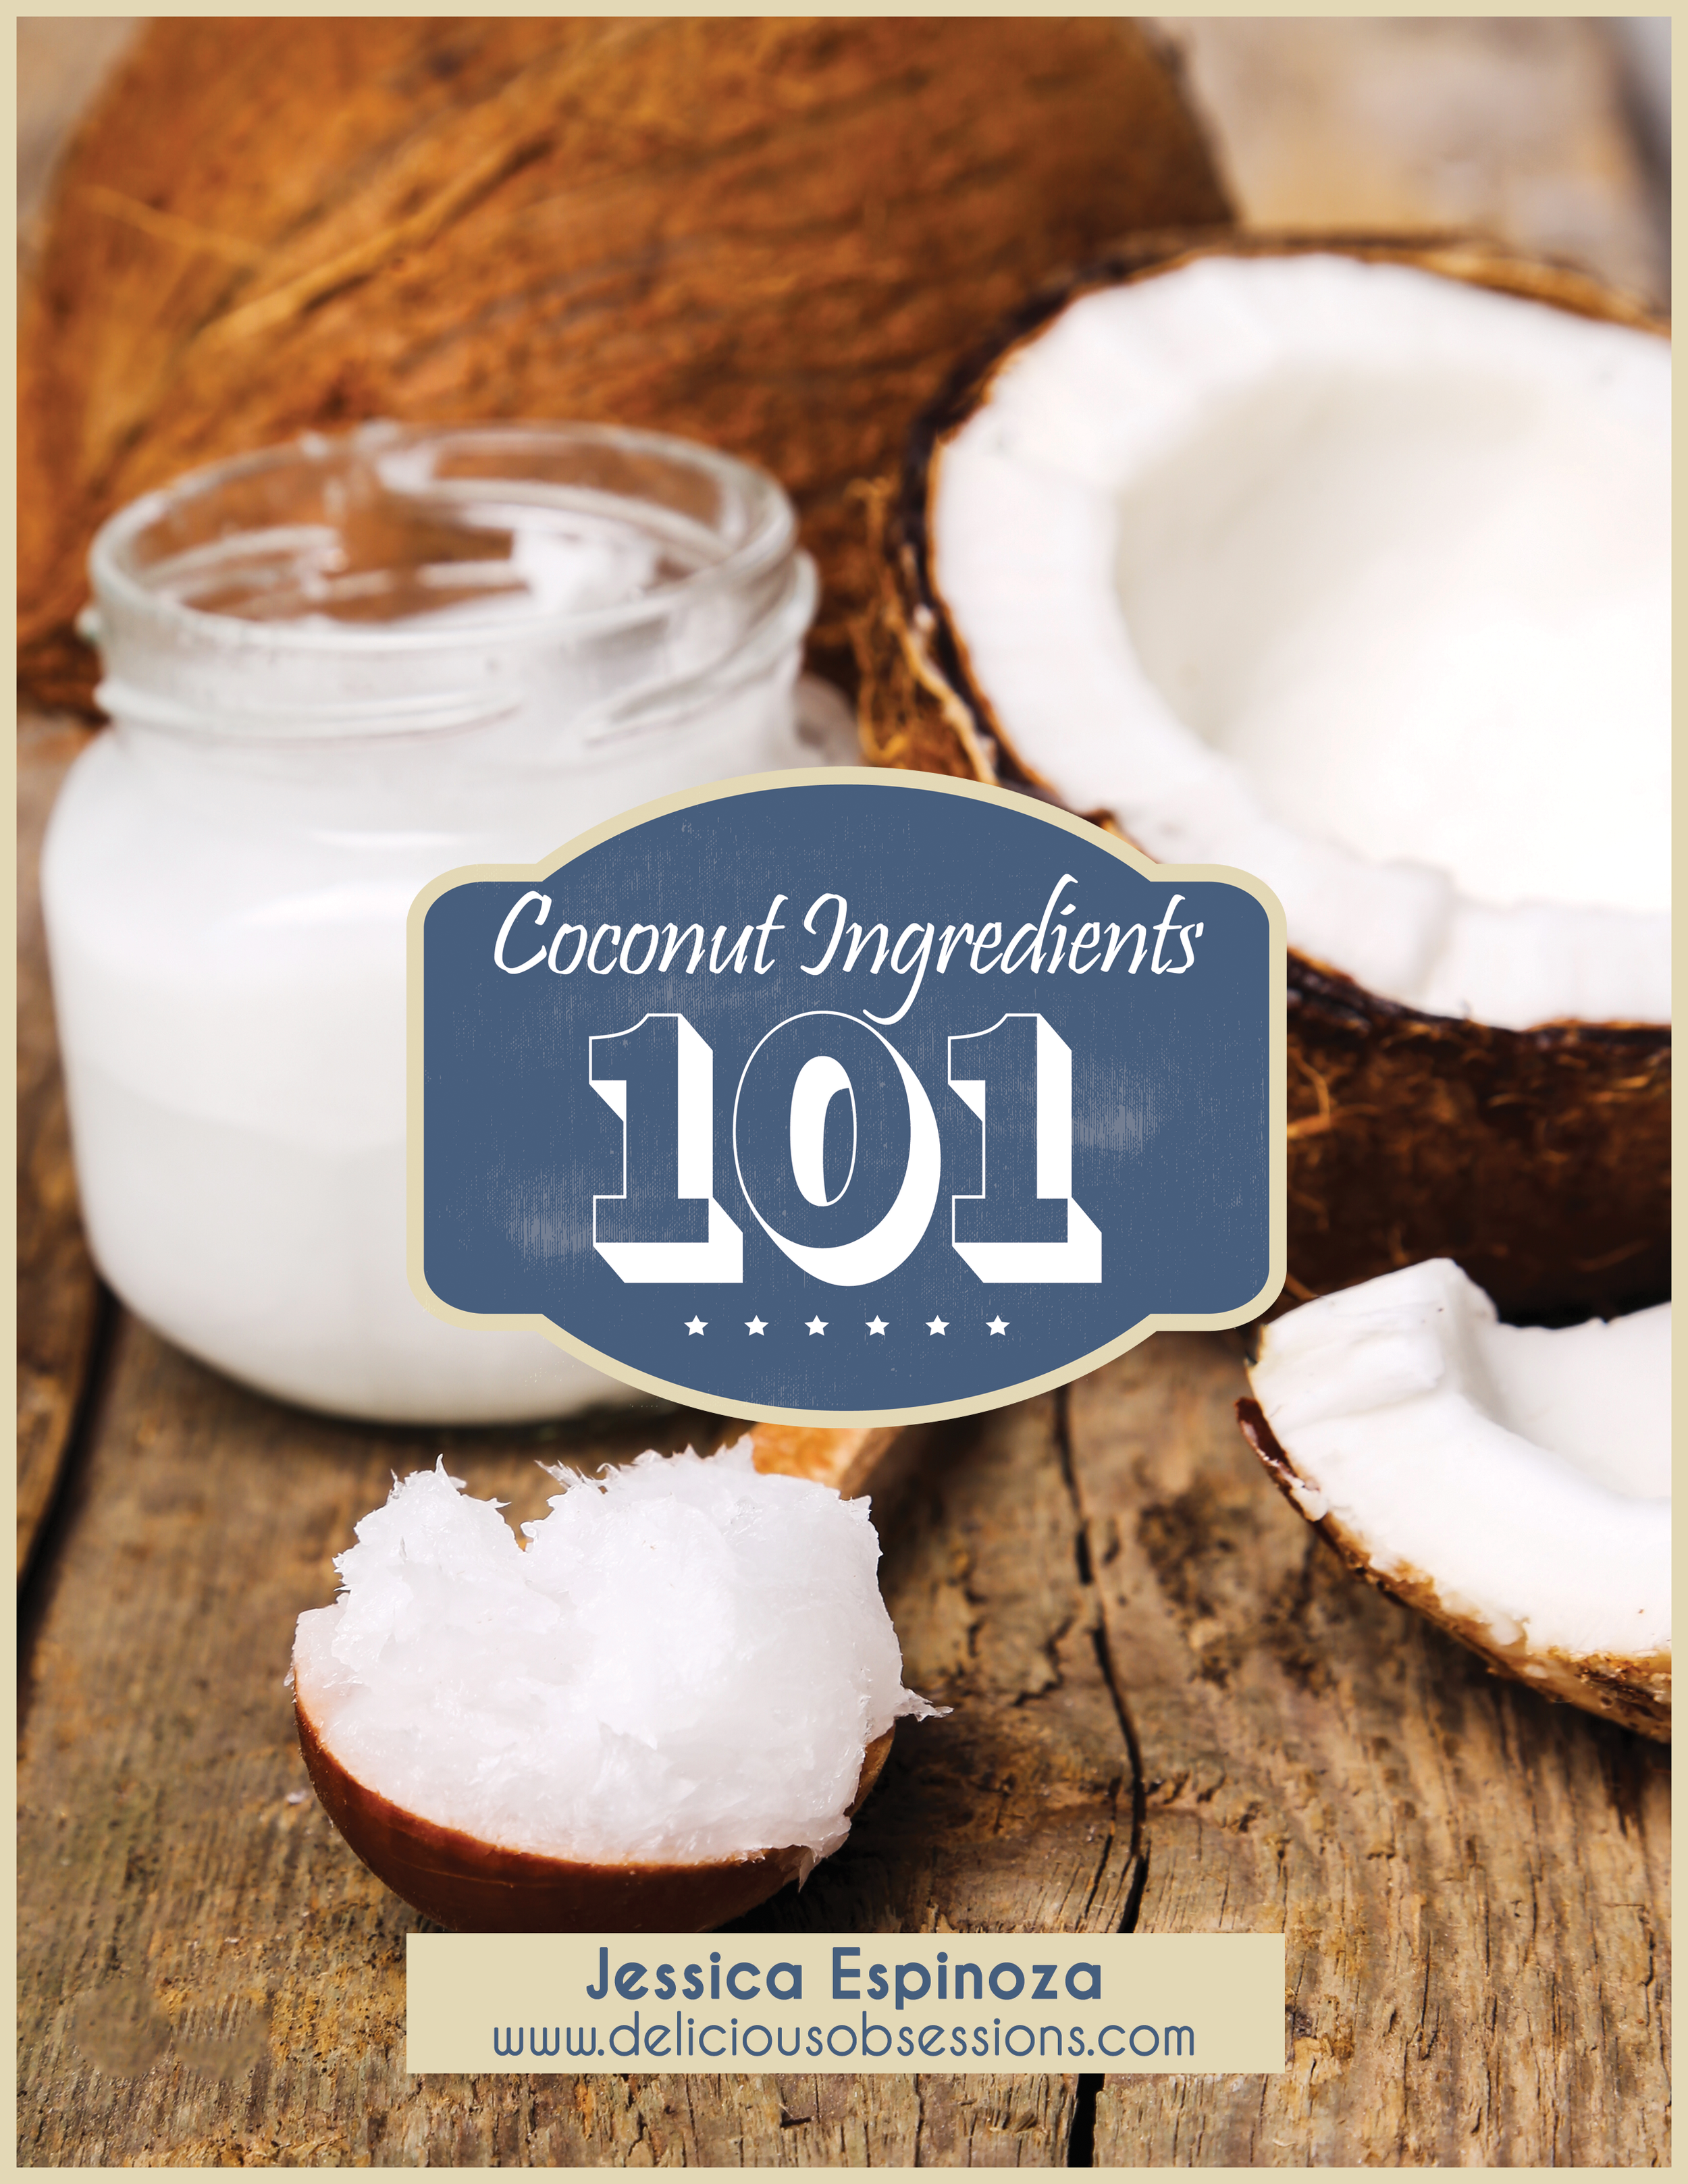 coconut-ingredients101-cover-image.png